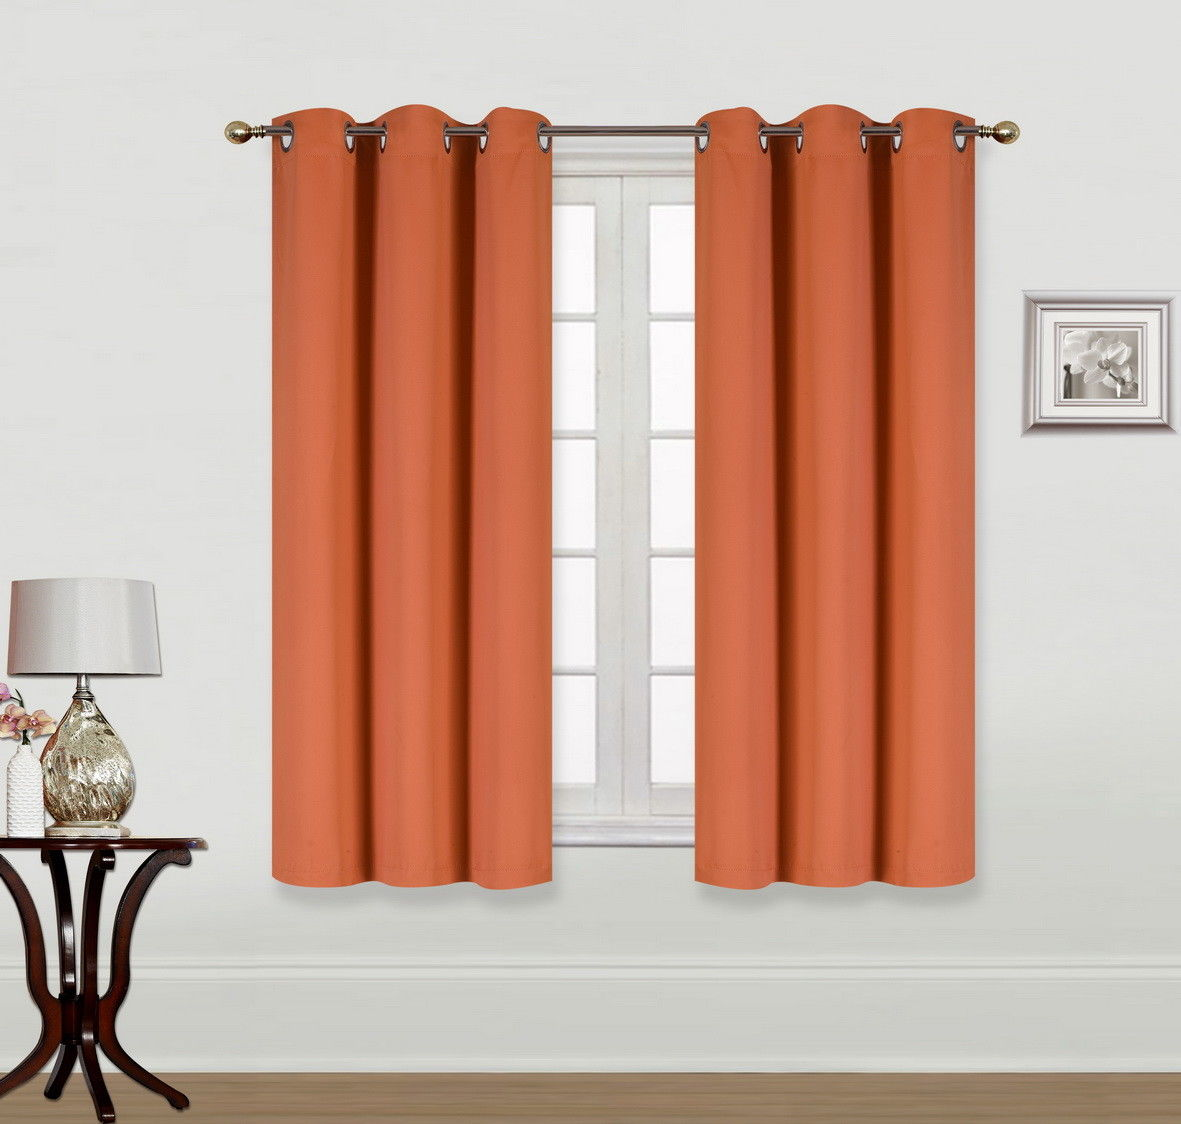 "(K68) ORANGE 2-Piece Indoor and Outdoor Thermal Sun Blocking Grommet Window Curtain Set, Two (2) Panels 35"" x 63"" Each"